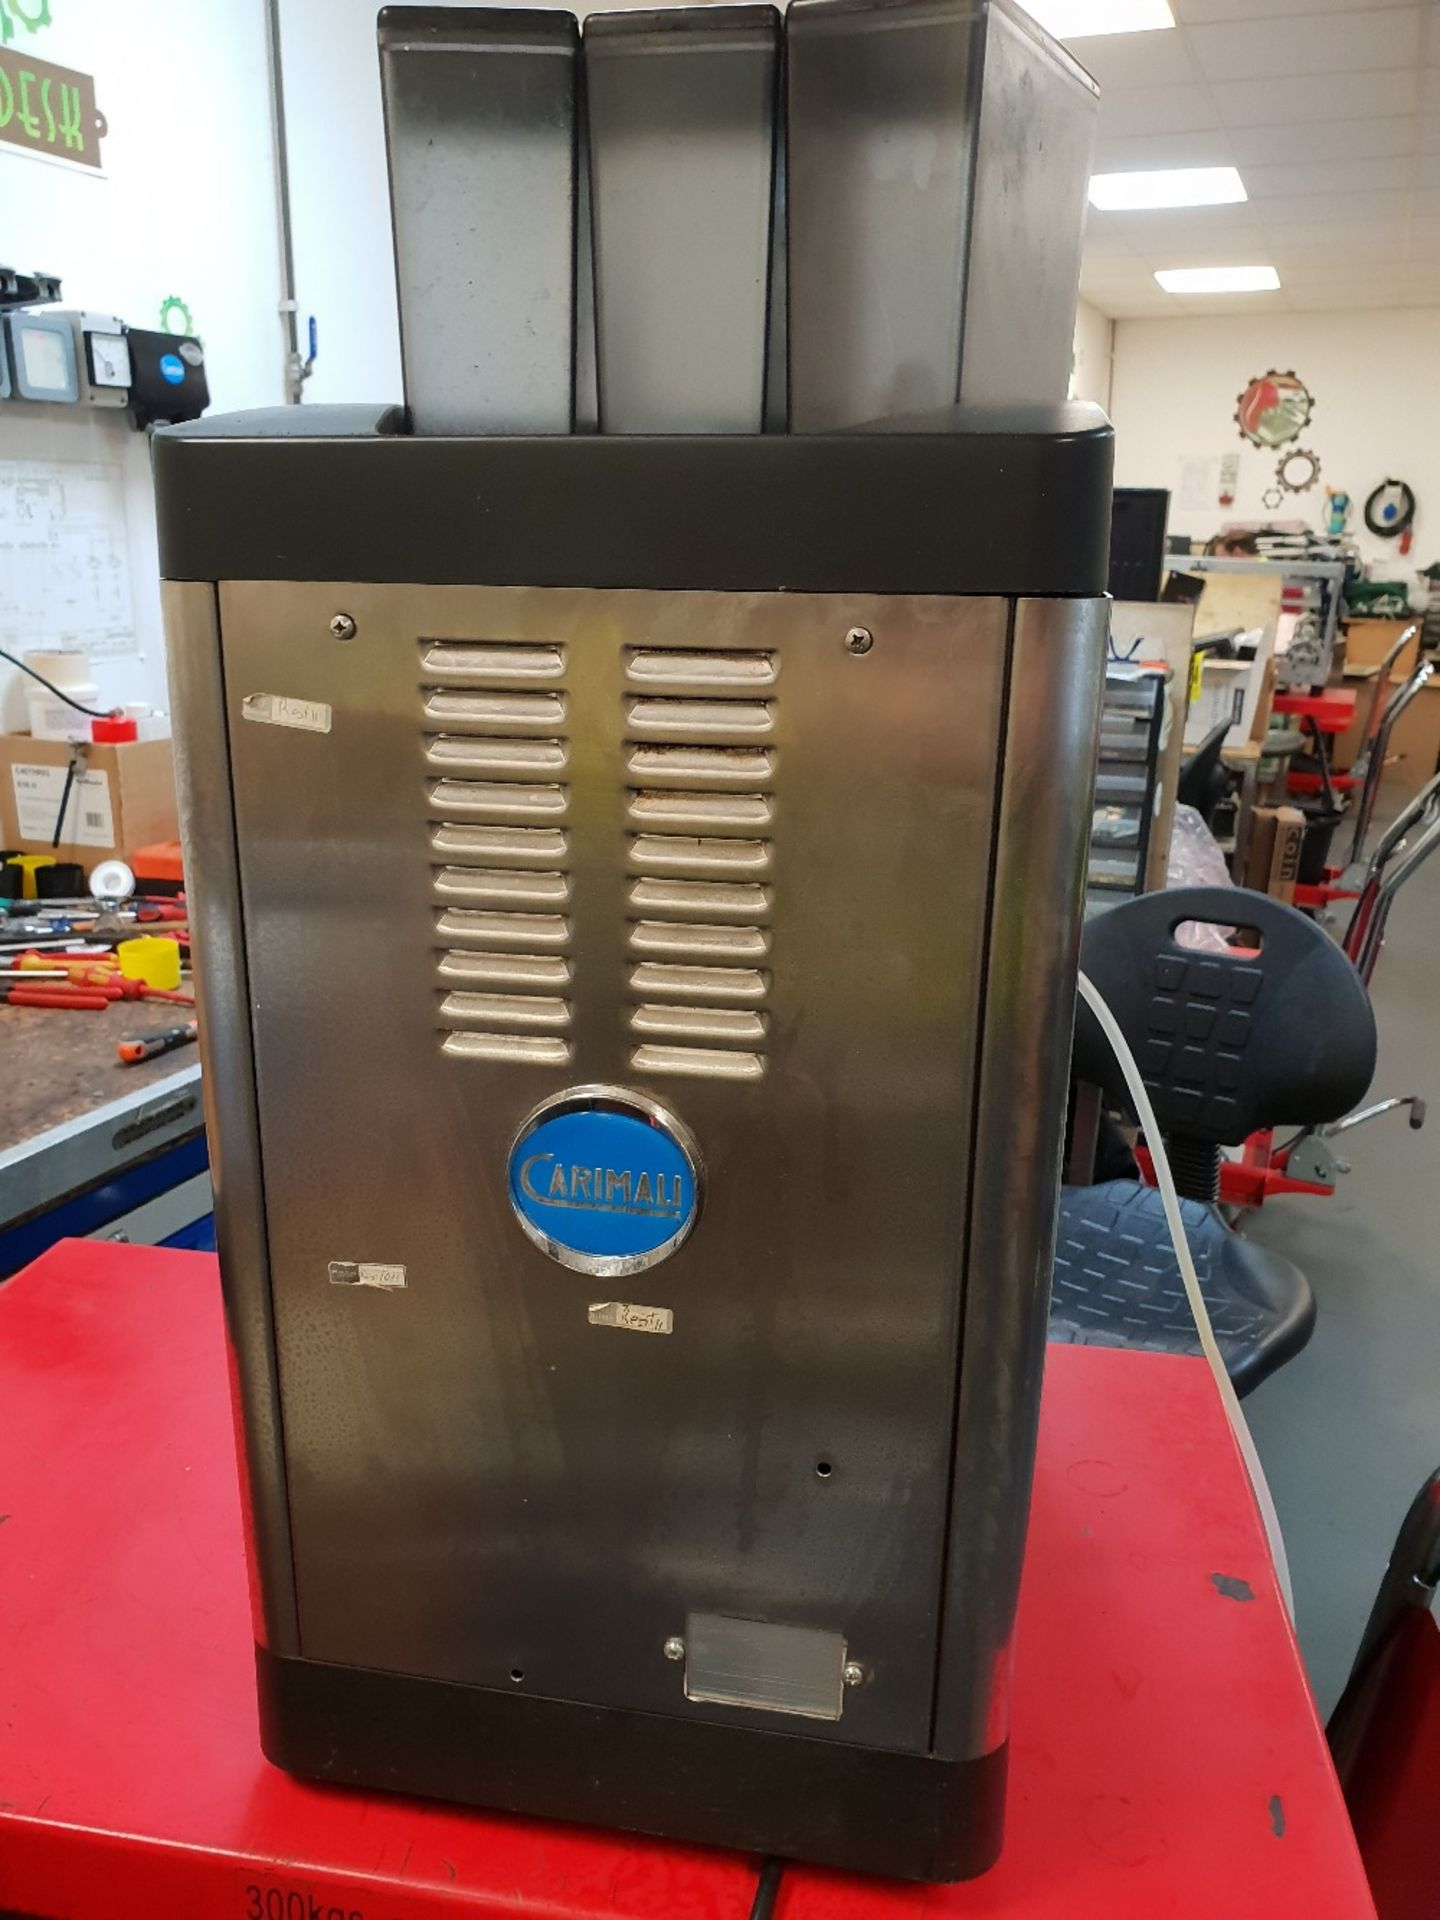 Lot 68 - Carimali Solar Touch Drinks Machine – Bean to cup Coffee + Chocolate & Other DrinksThe Carimali